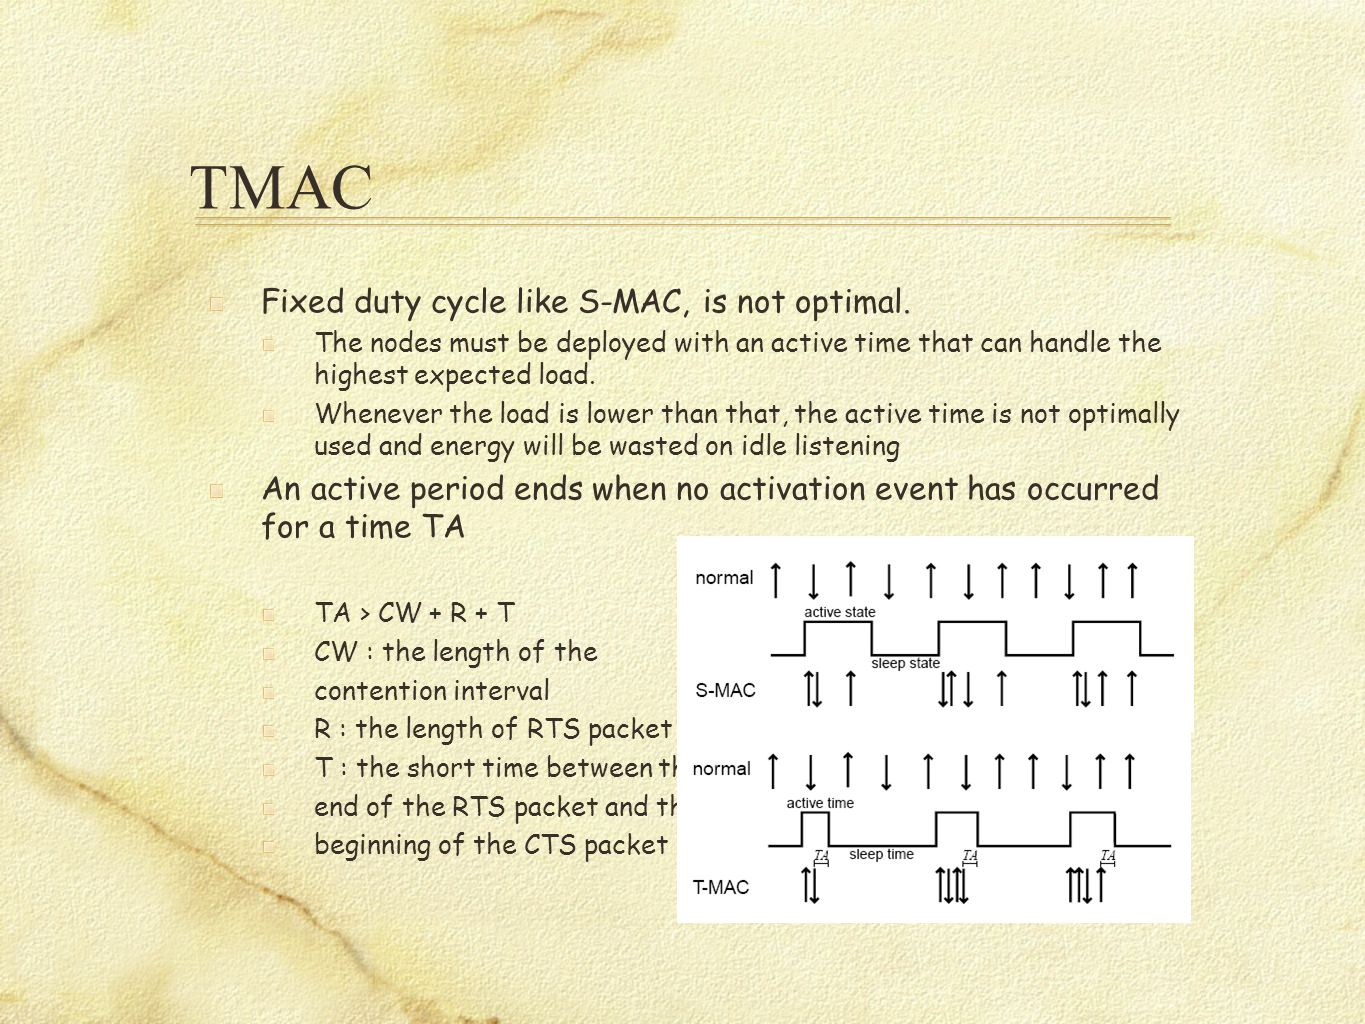 TMAC Fixed duty cycle like S-MAC, is not optimal. The nodes must be deployed with an active time that can handle the highest expected load. Whenever t